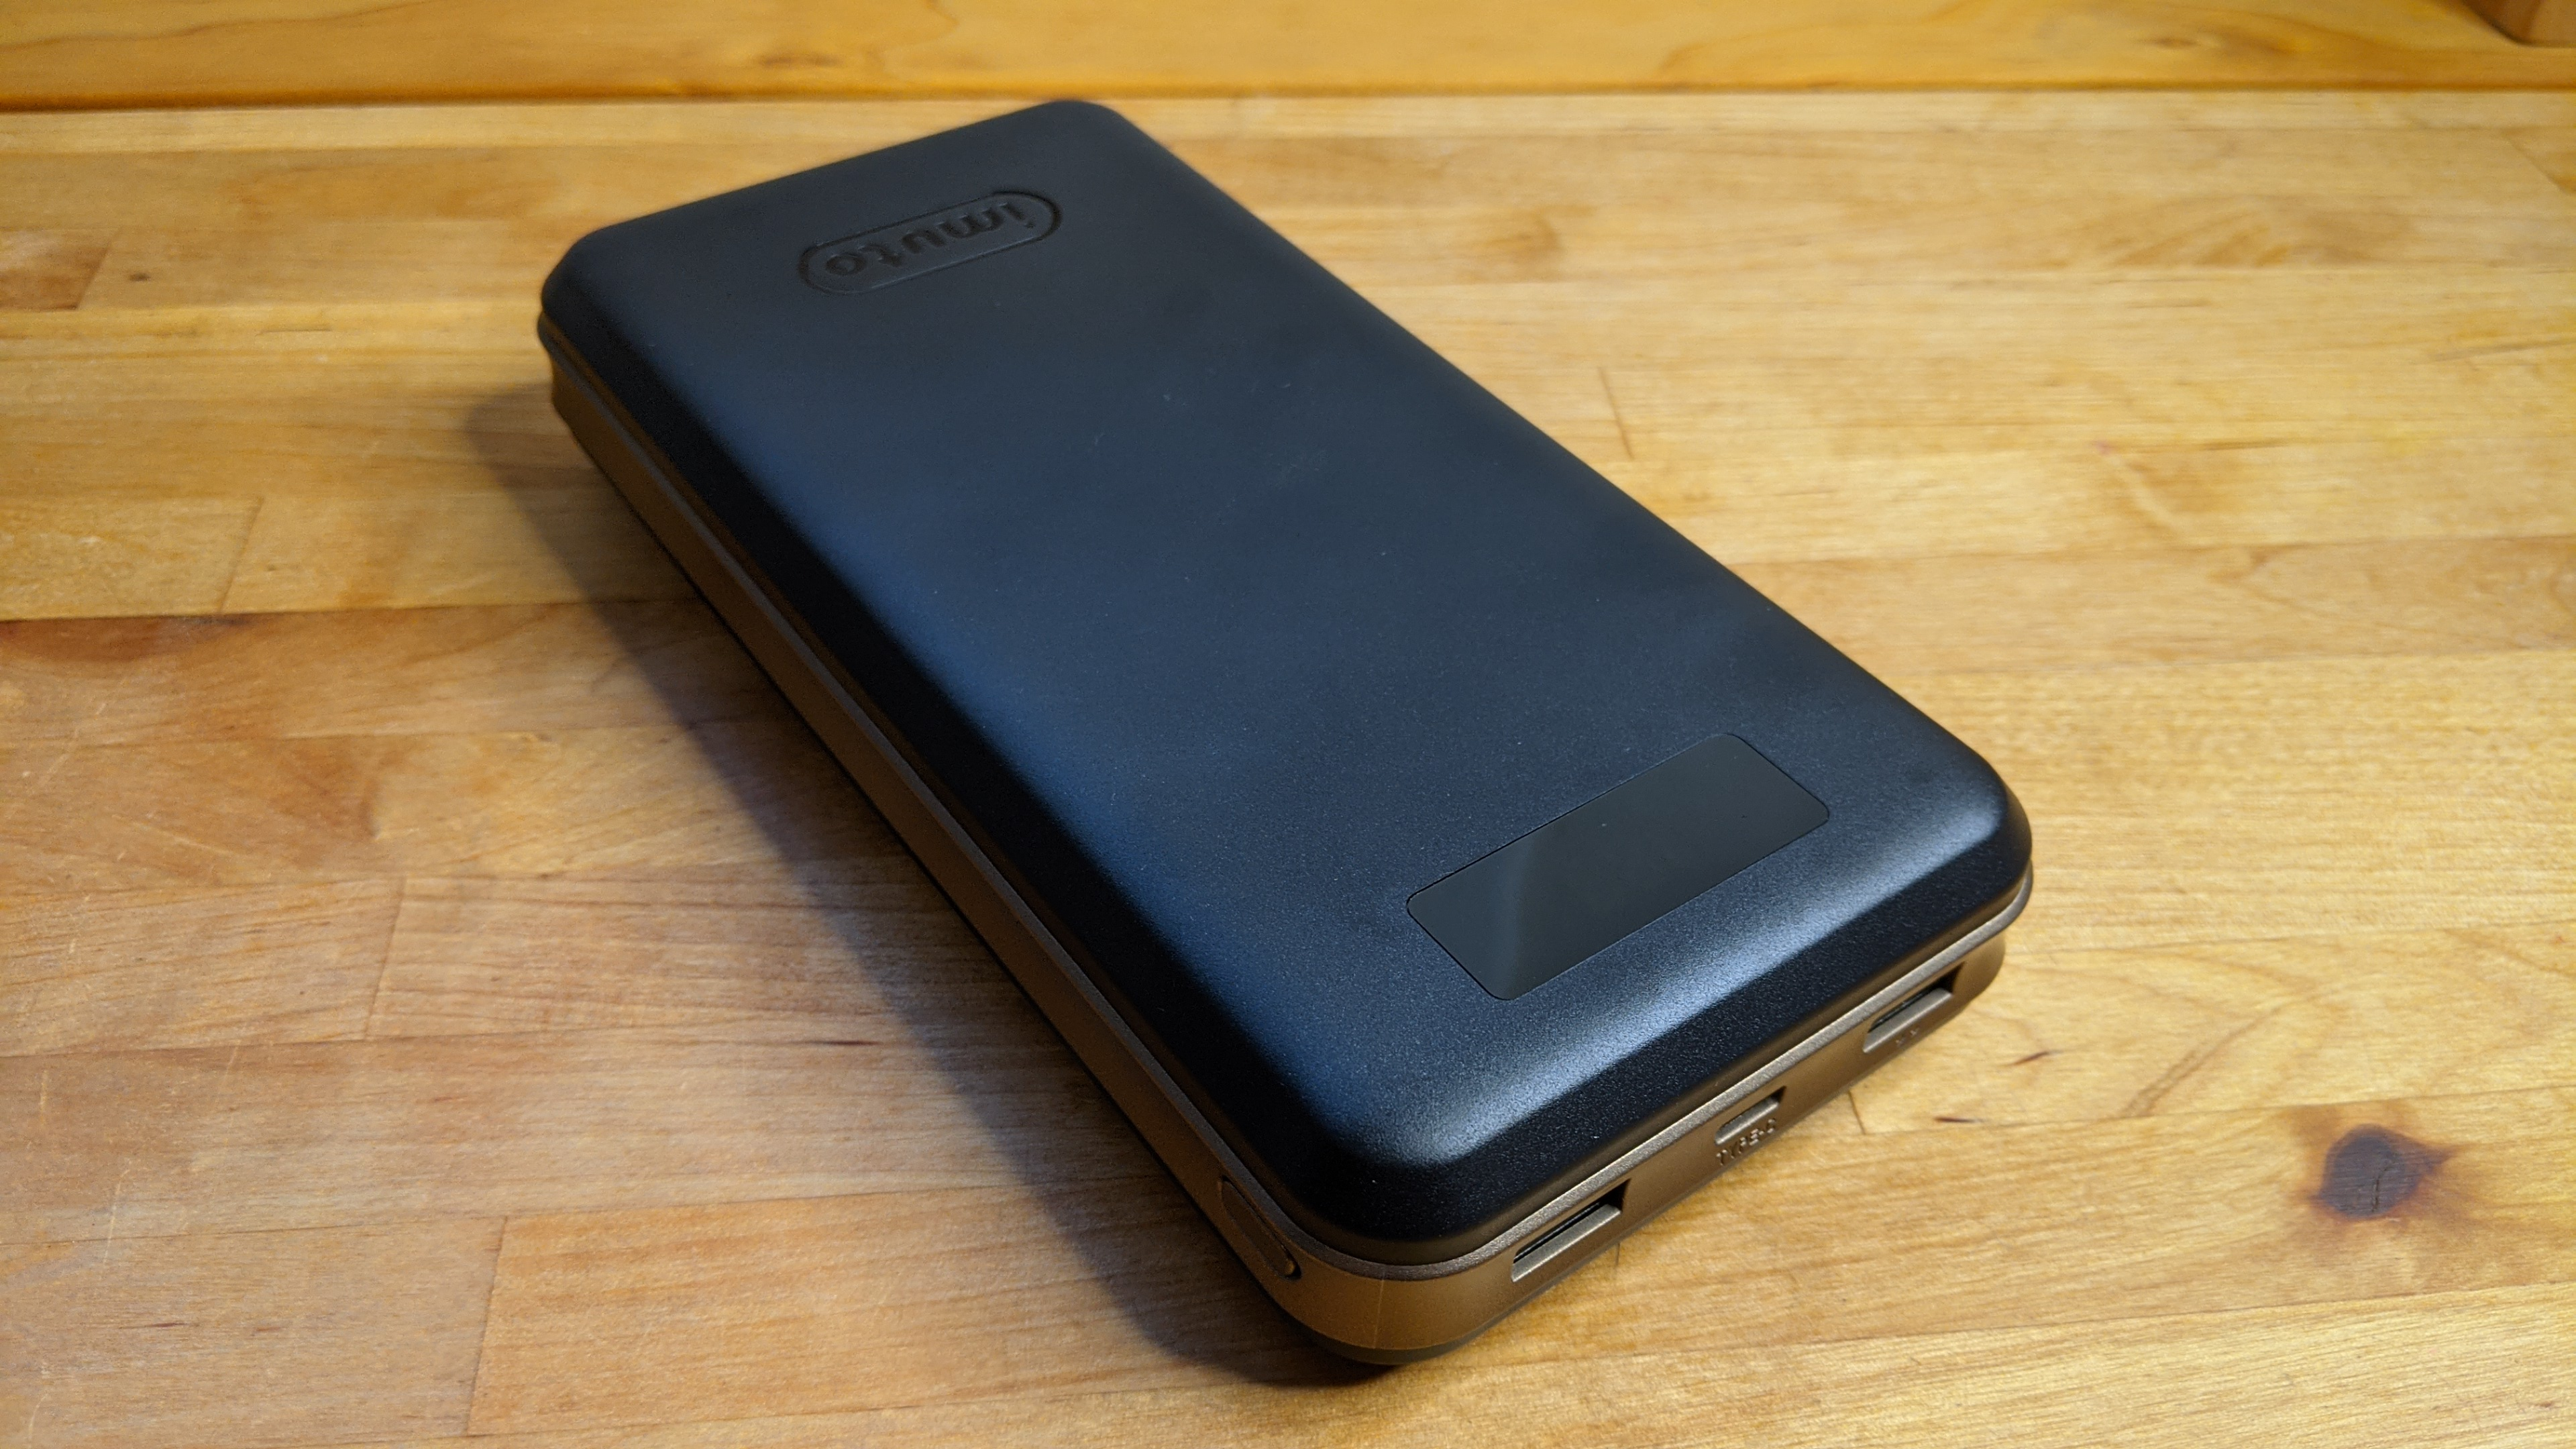 iMuto Smart Power X6SPD portable charger